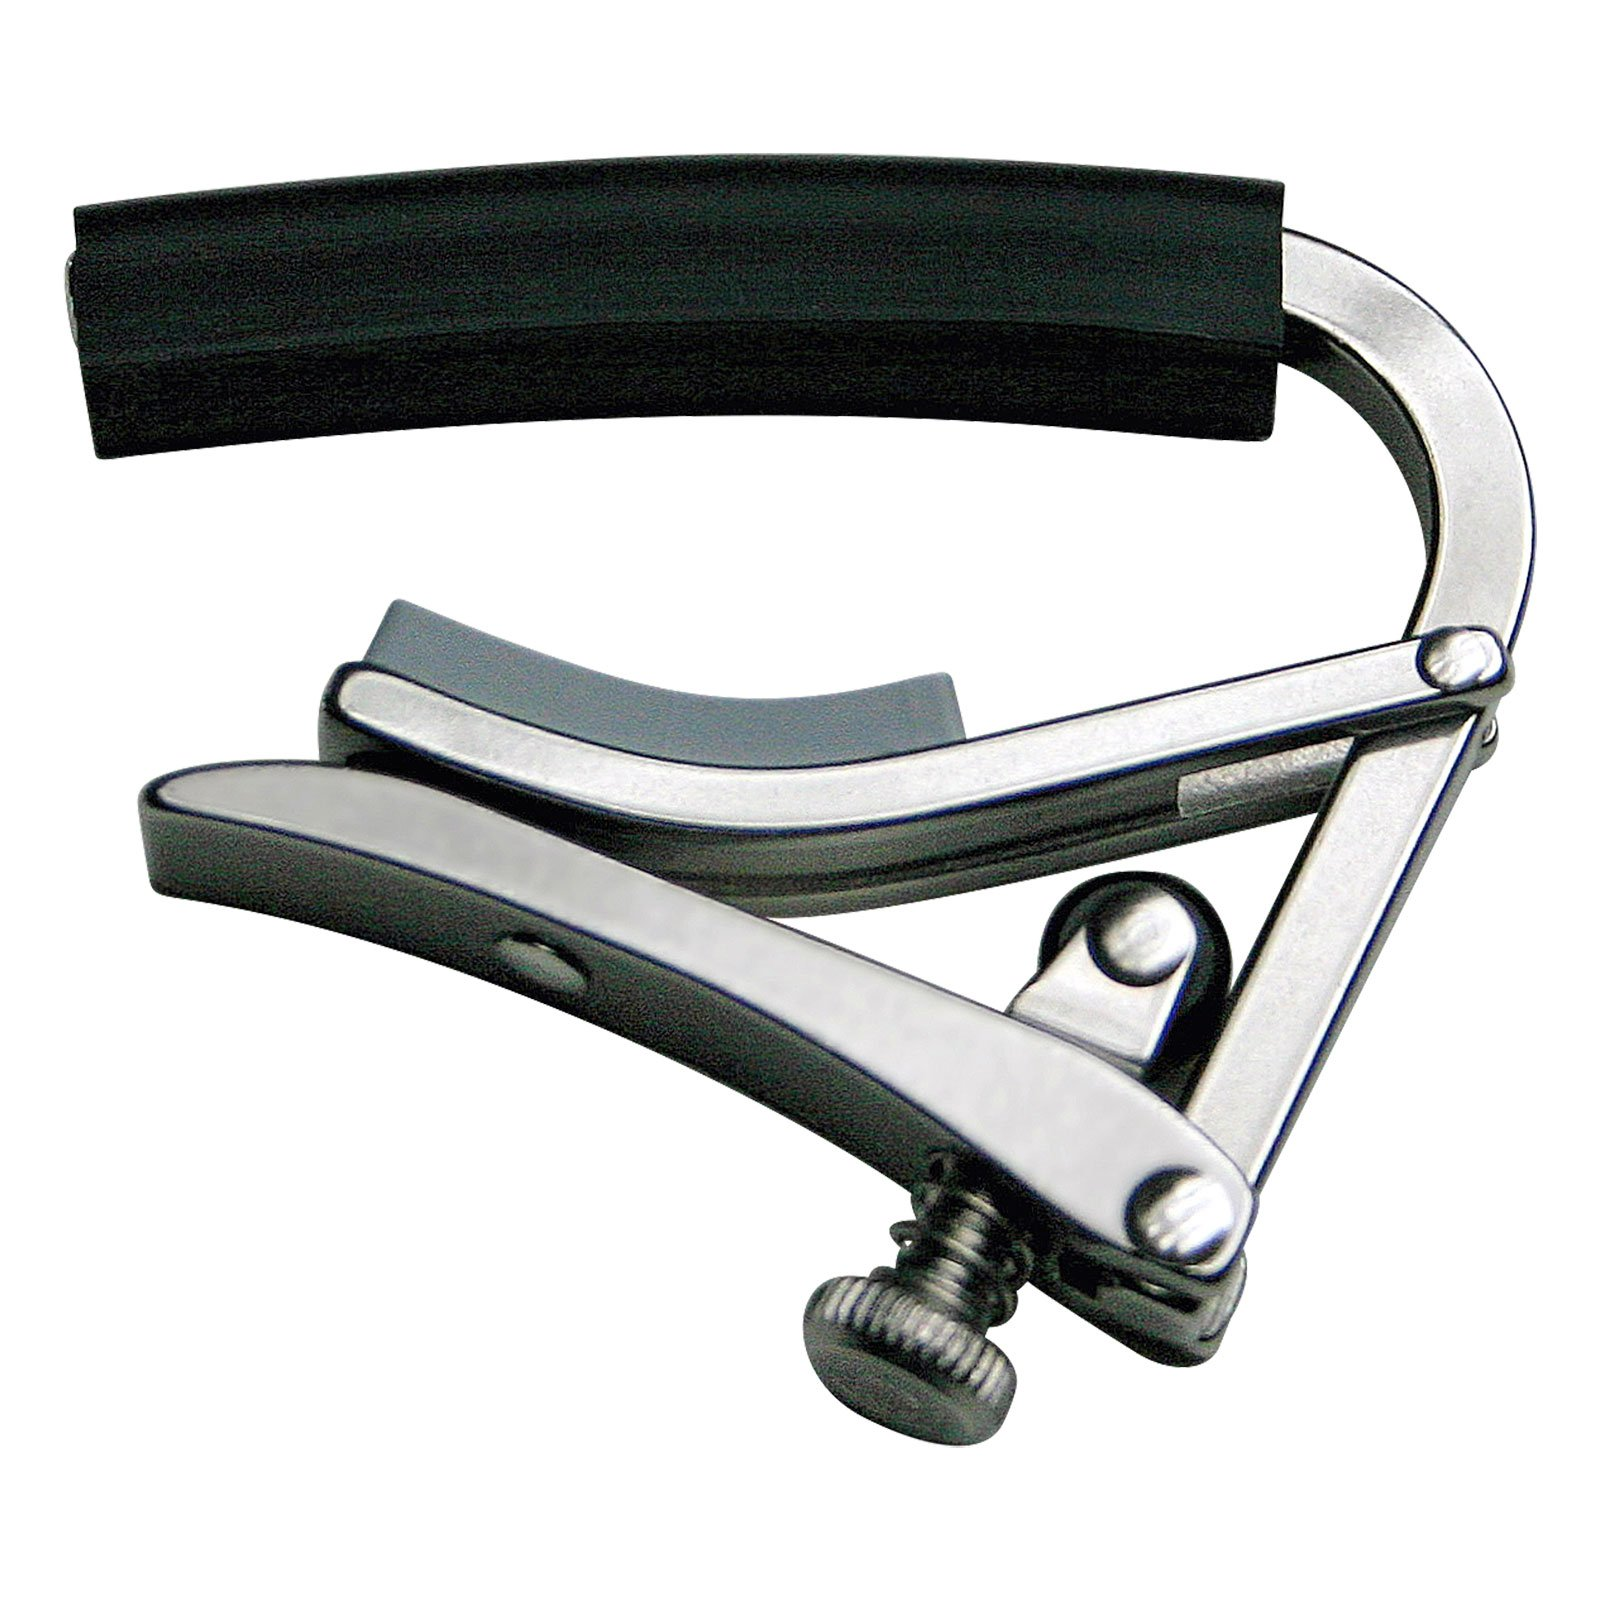 Shubb Deluxe Series GC-30E (S4) 7.25 Radius Neck Electric Guitar Capo - Stainless Steel